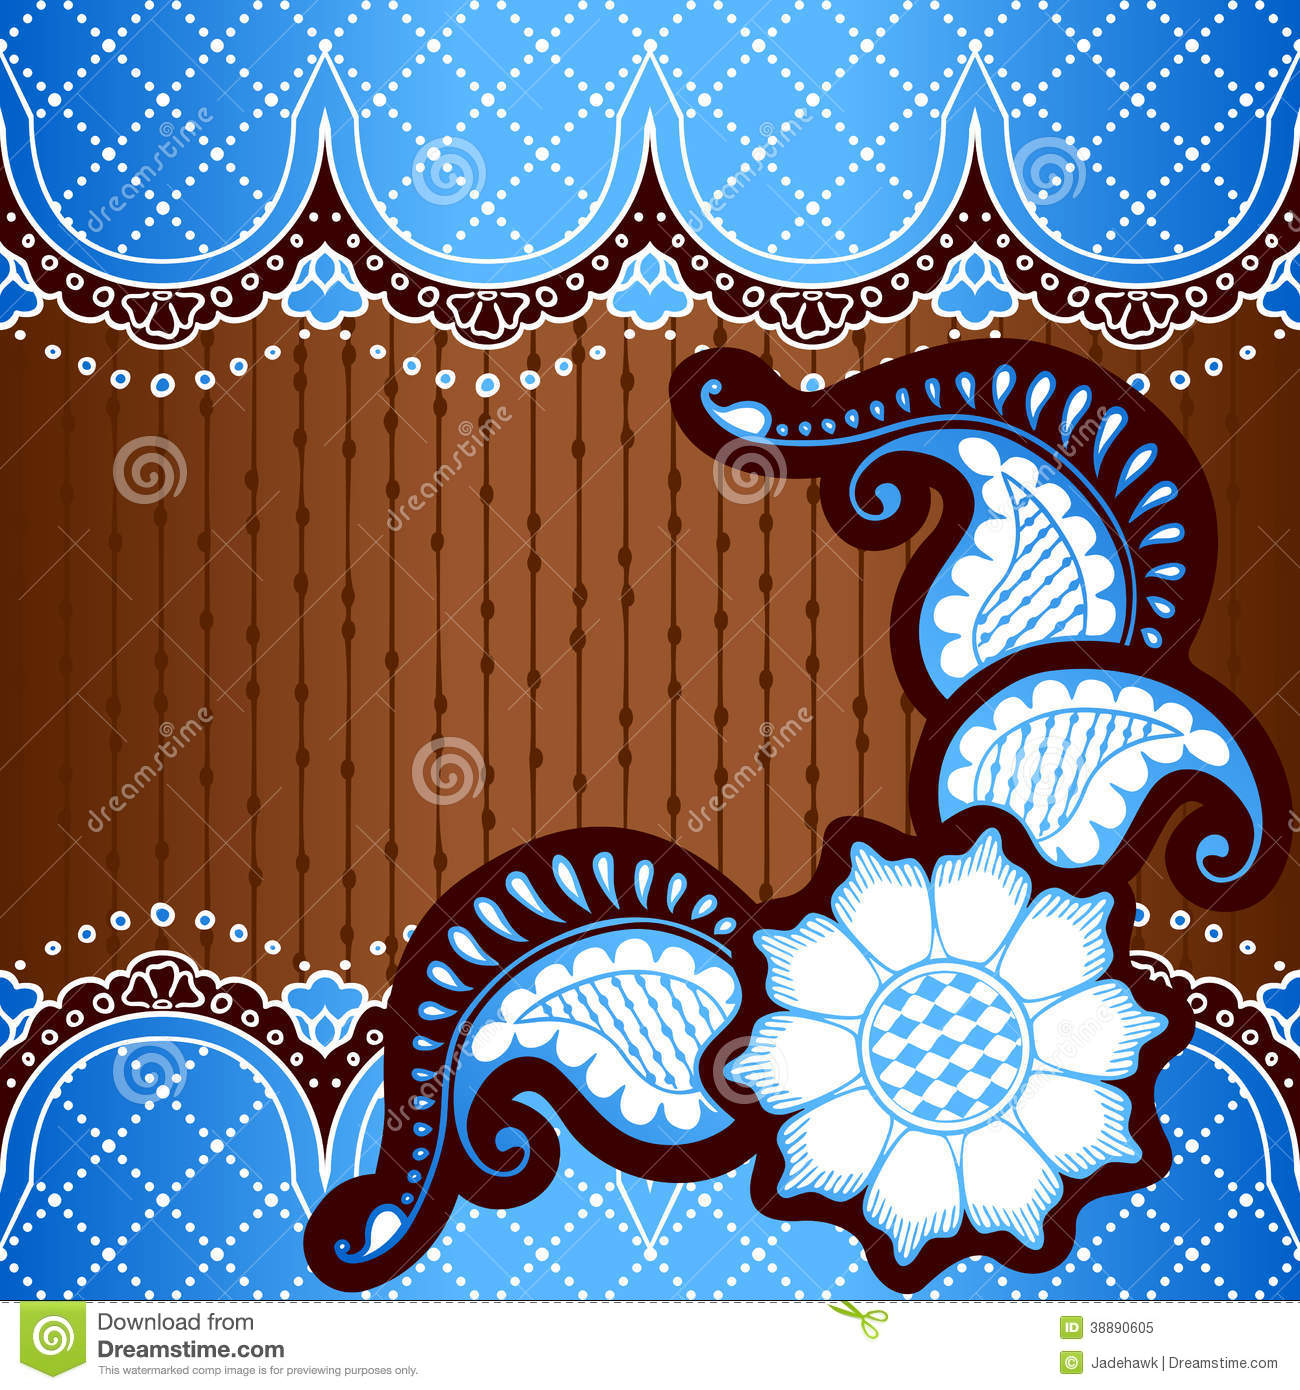 Ornate vintage vector background in mehndi style royalty free stock - Royalty Free Stock Photo Background Banner Blue Brown Designs Henna Indian Mehndi